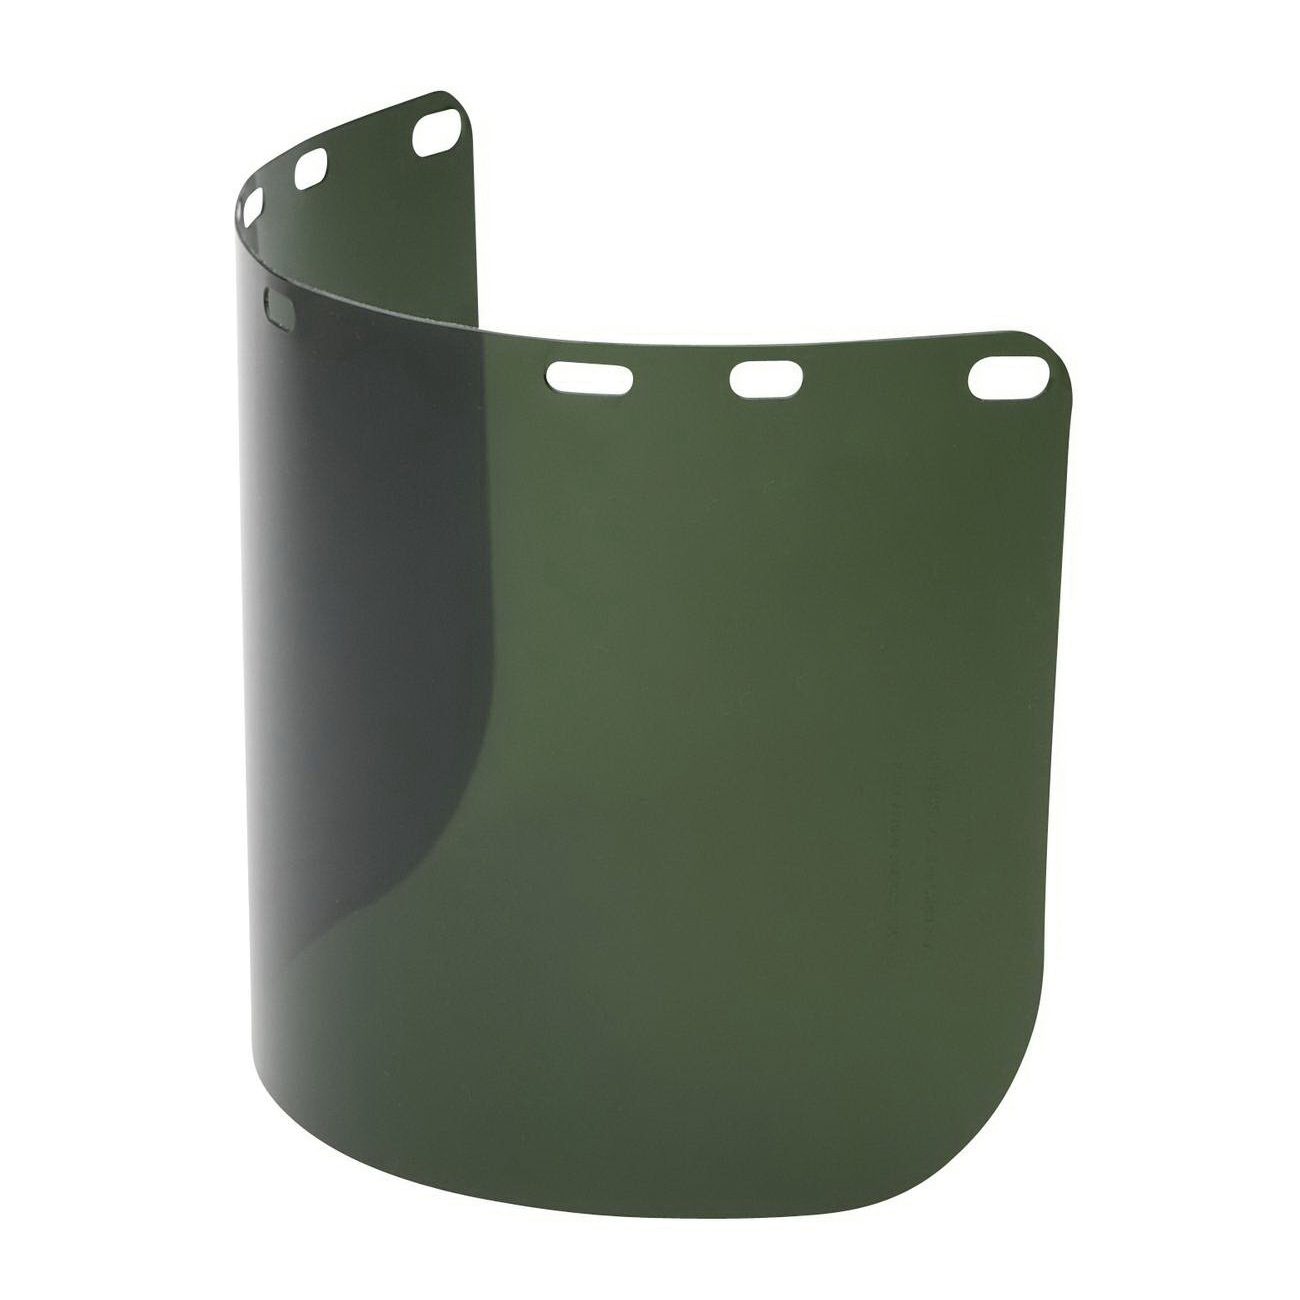 North® by Honeywell A8154G Faceshield Replacement Visor, Green, Polycarbonate, 8 in H x 15-1/2 in W x 0.04 in THK Visor, For Use With Headgears and Brackets, Specifications Met: ANSI Z87.1-2010